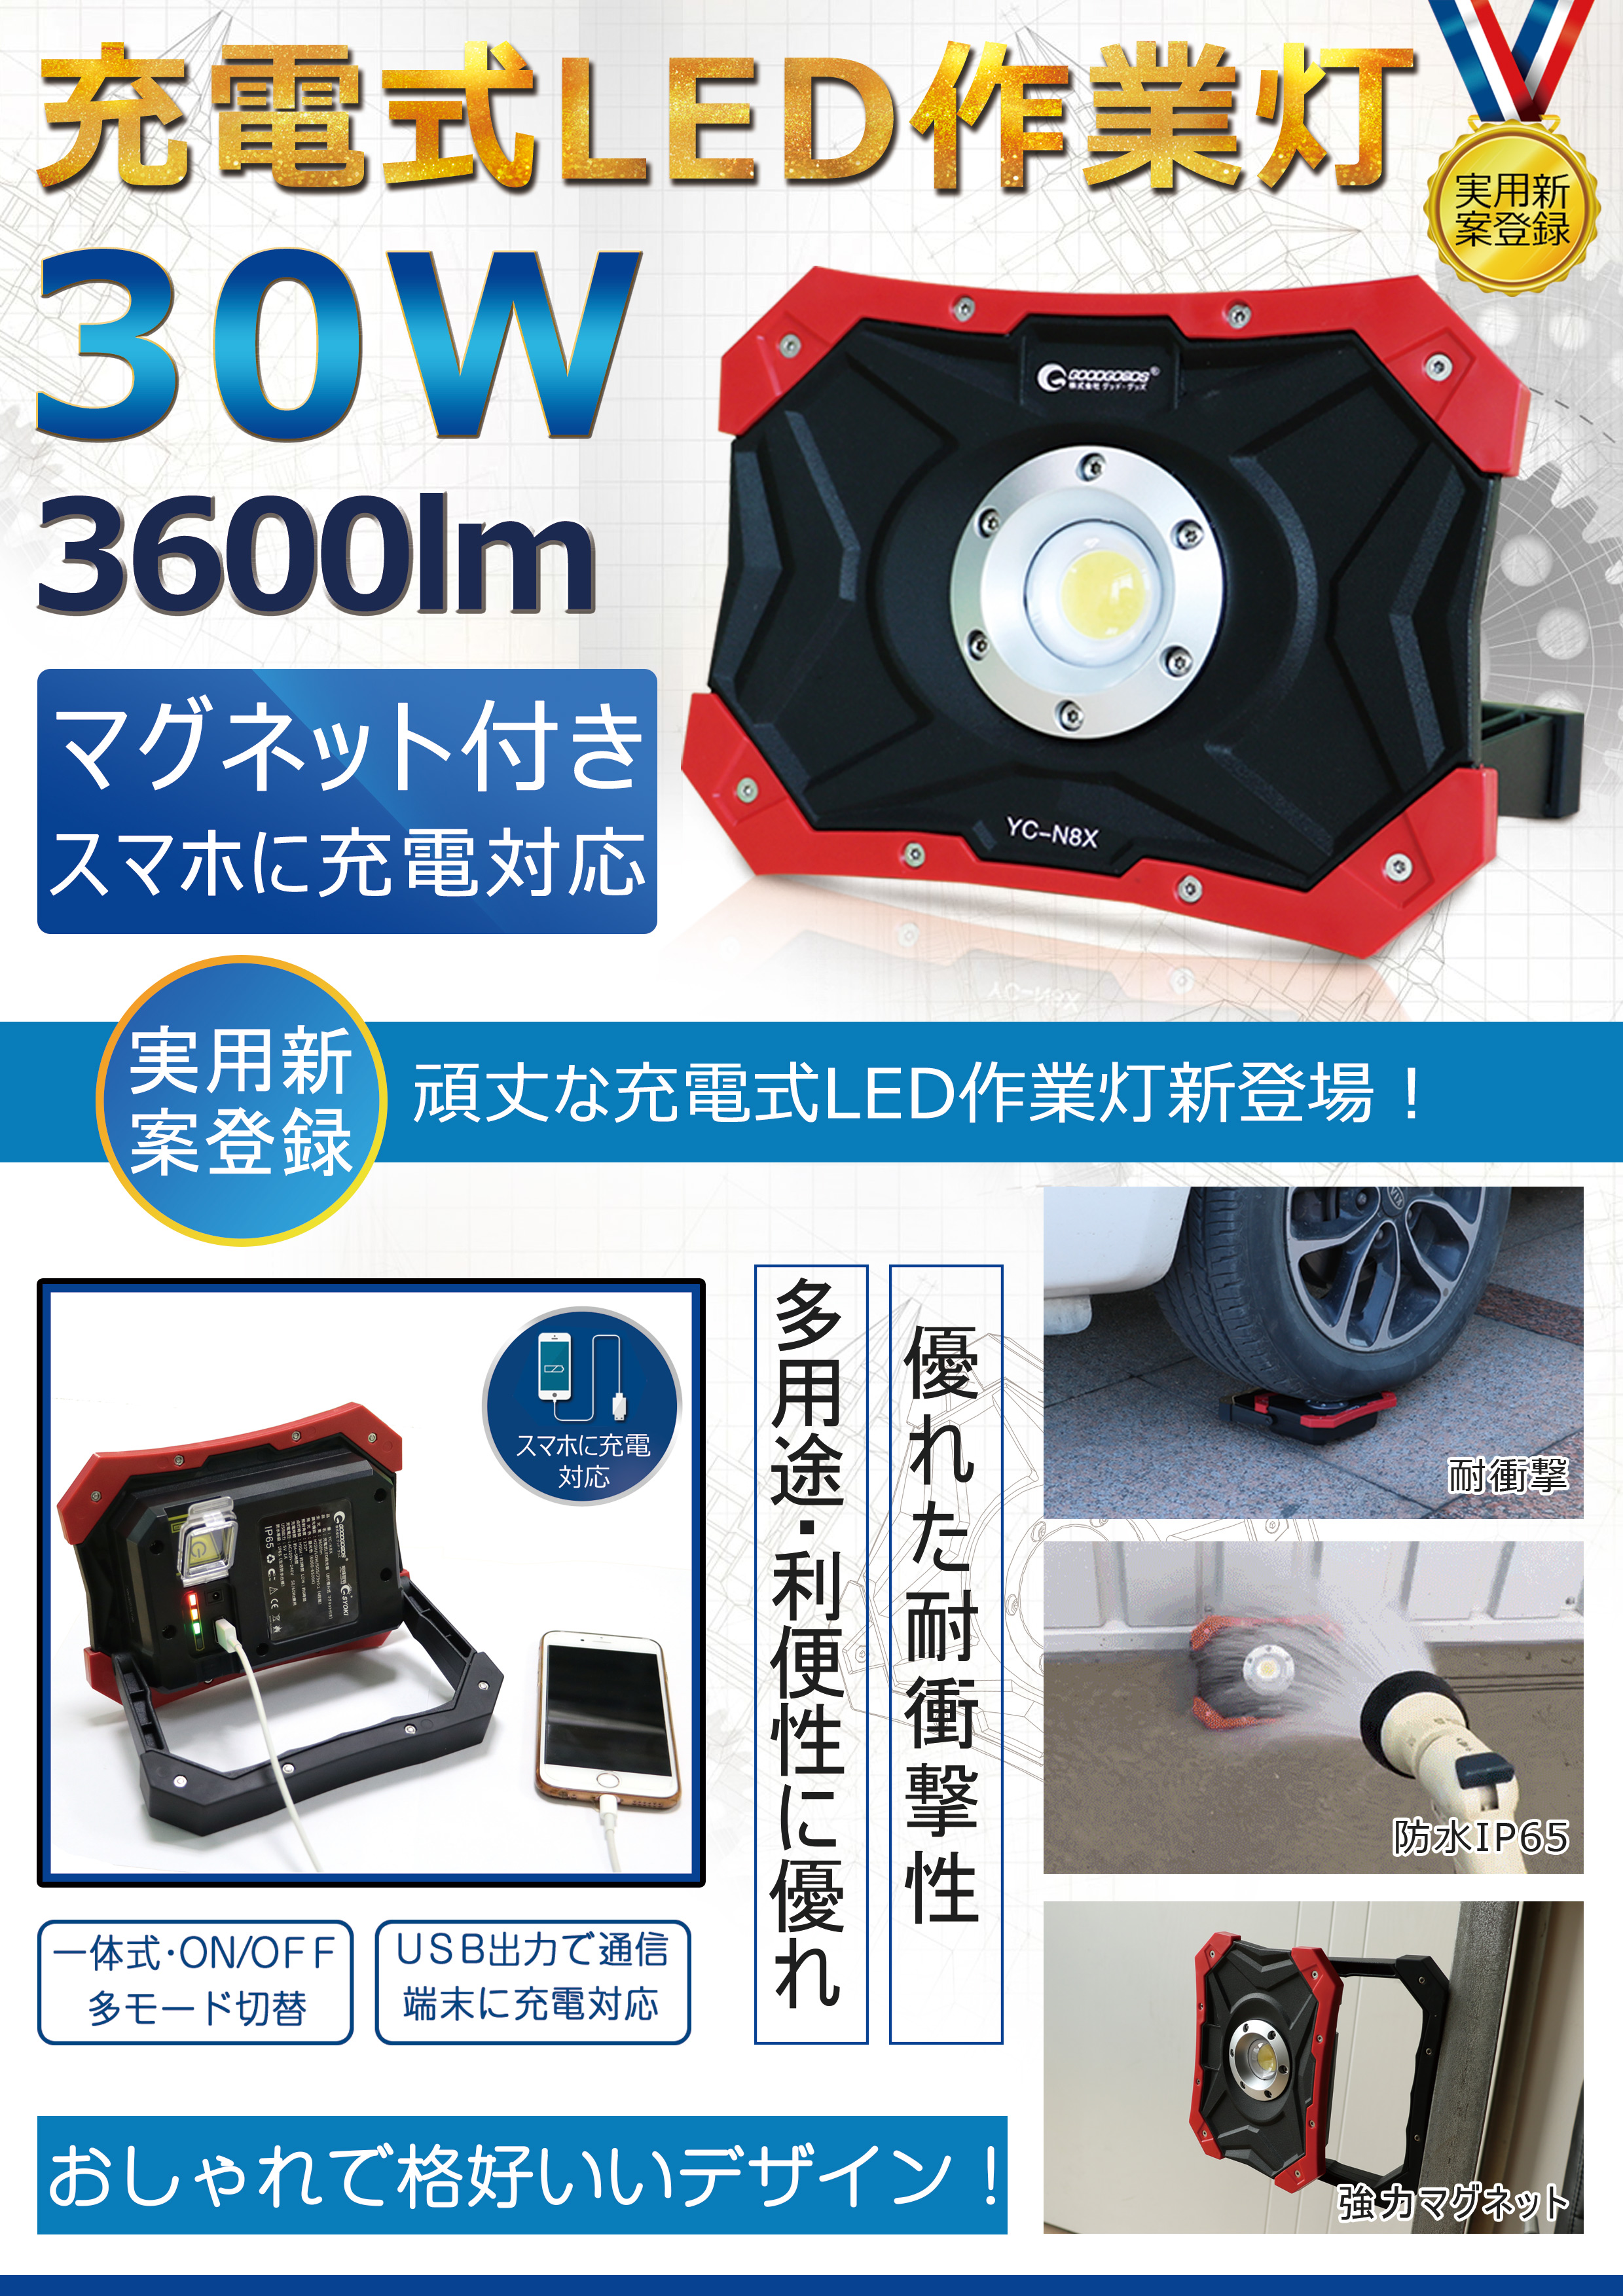 product-catalogue_yc-n8x-1.jpg